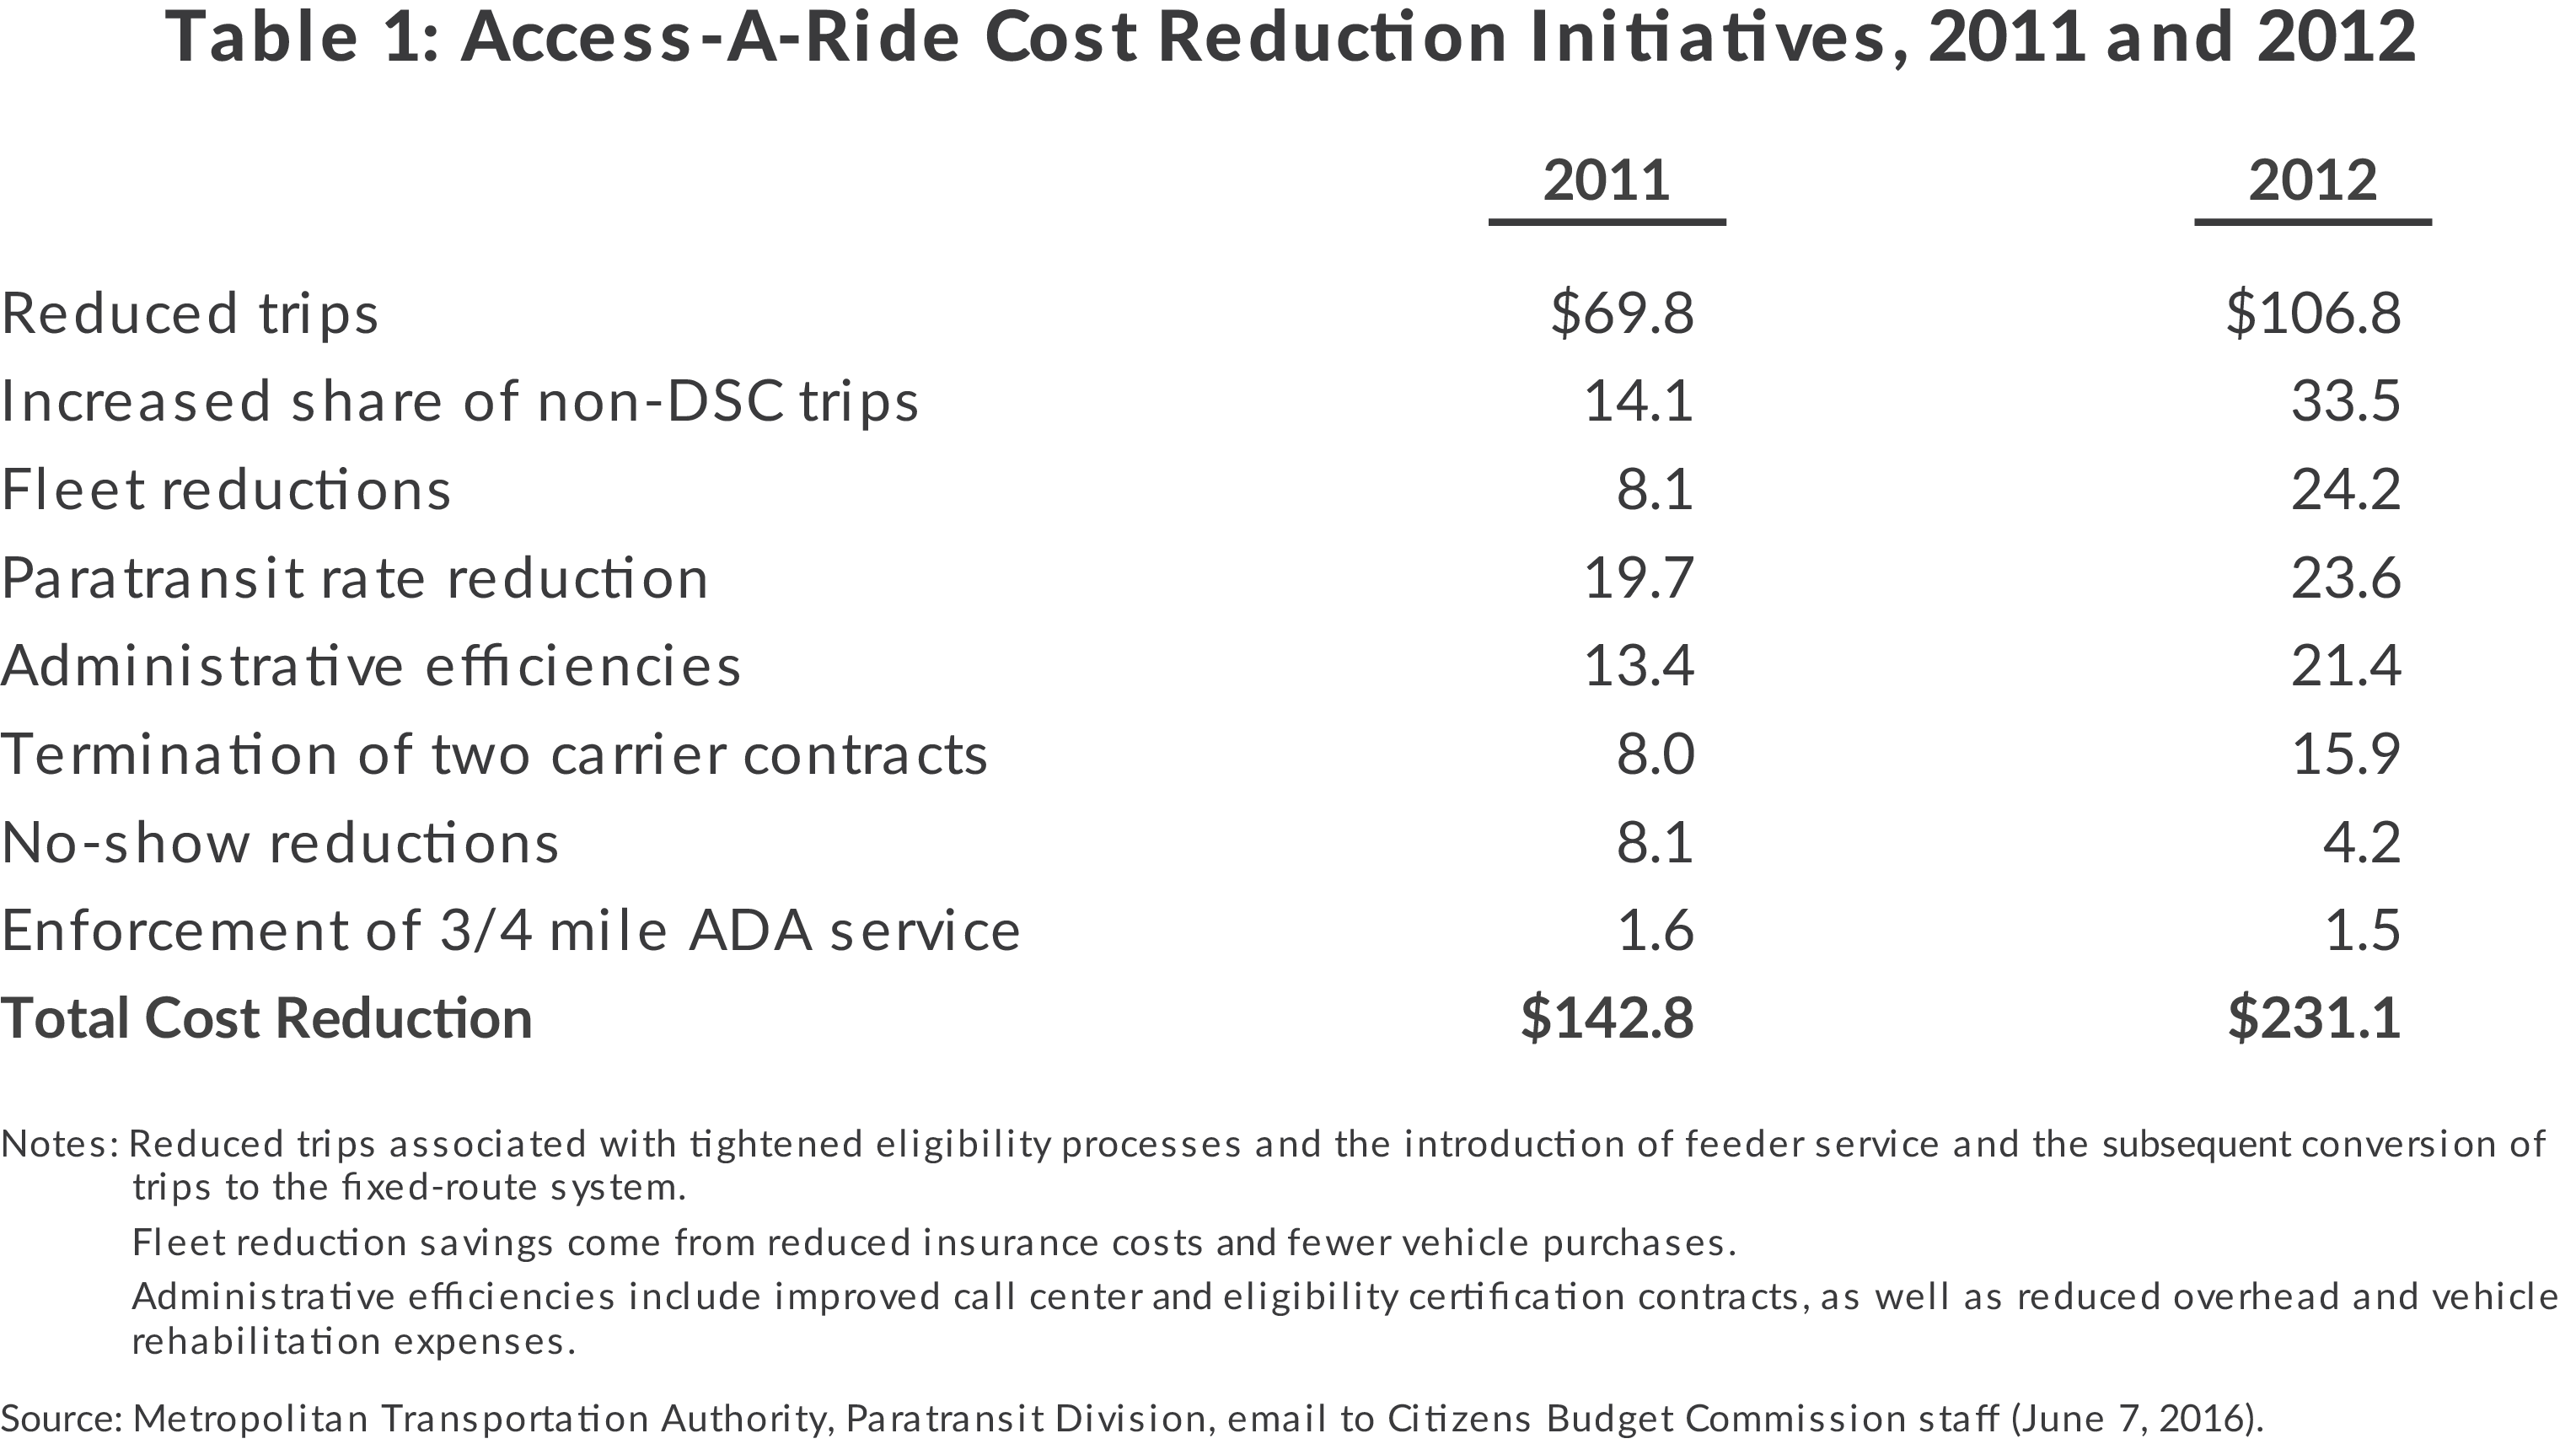 Table of Access-a-ride cost reduction initiatives